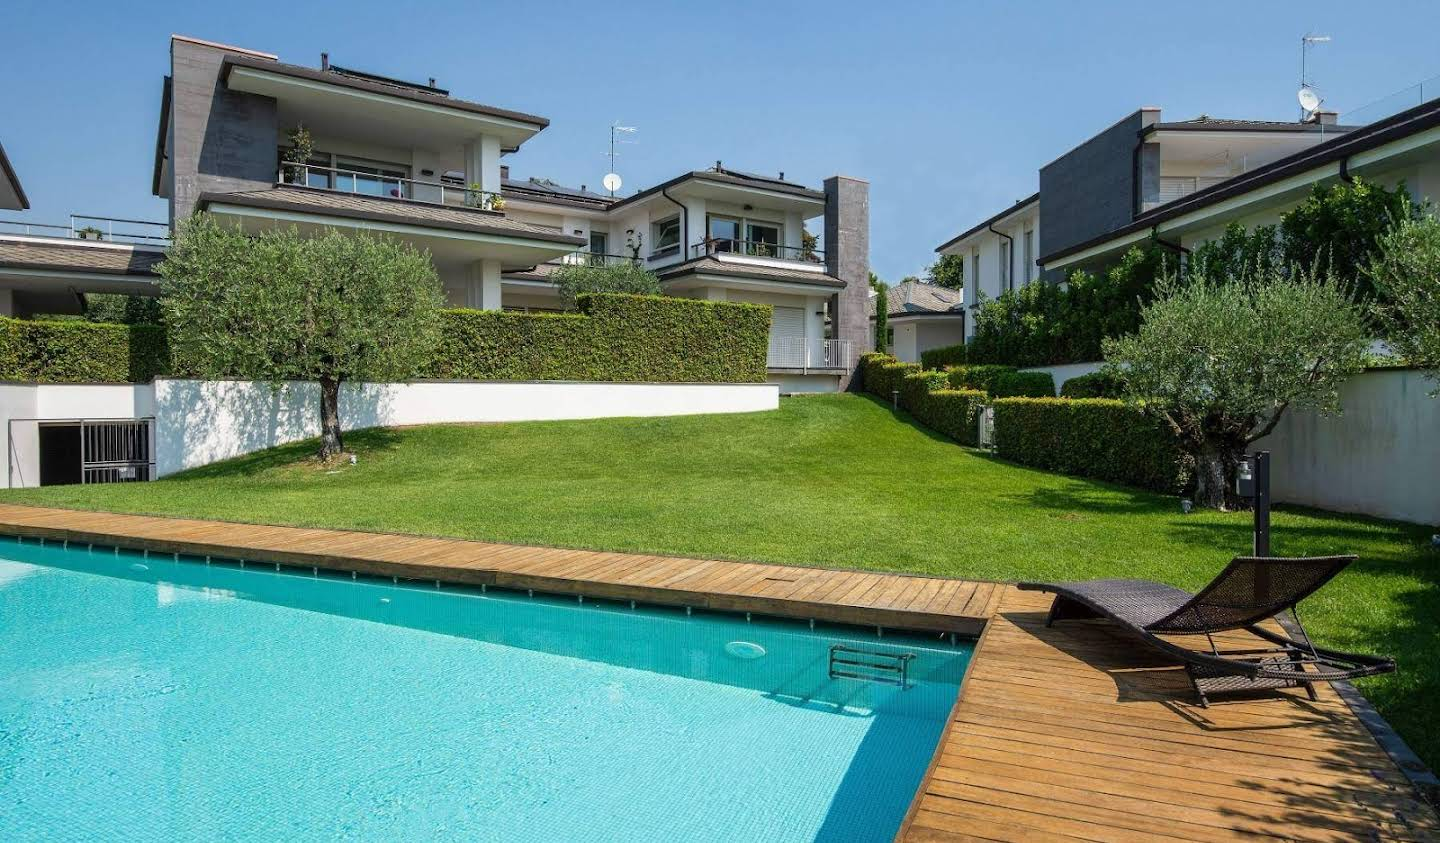 Apartment with terrace and pool Padenghe sul Garda